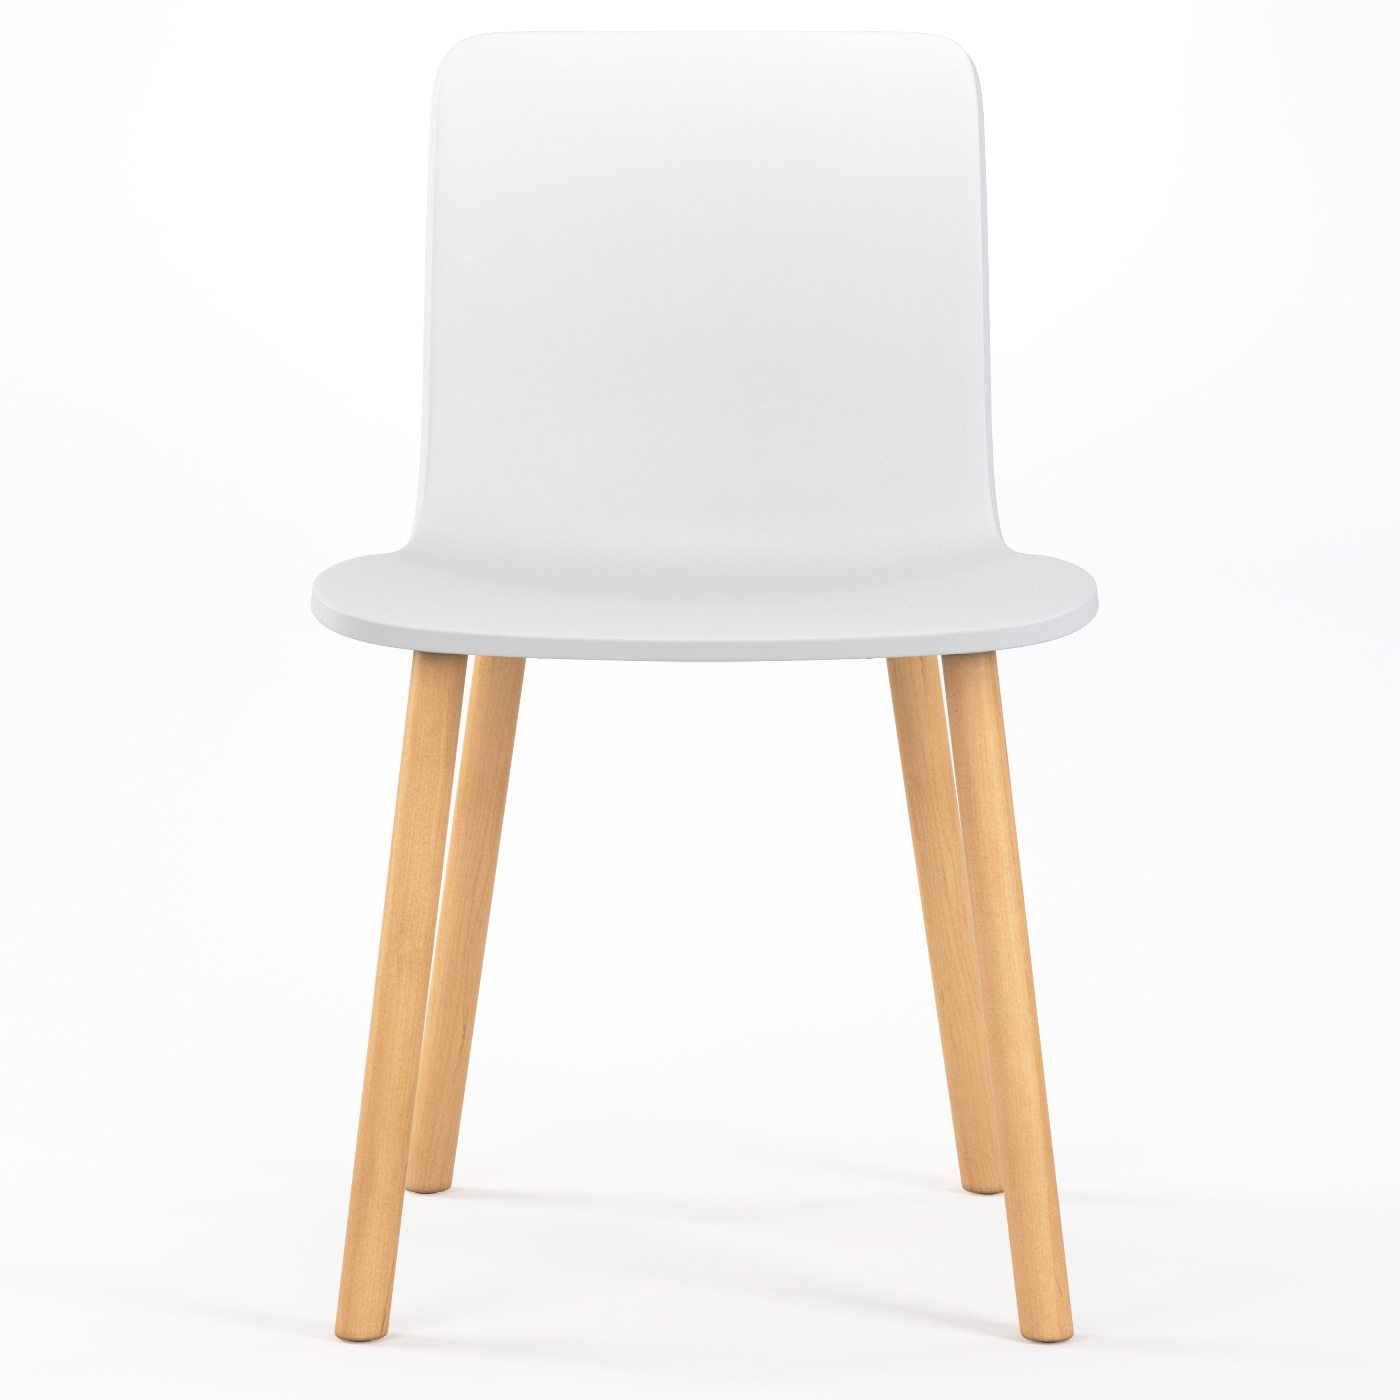 studio plastic modern dining chair in white -